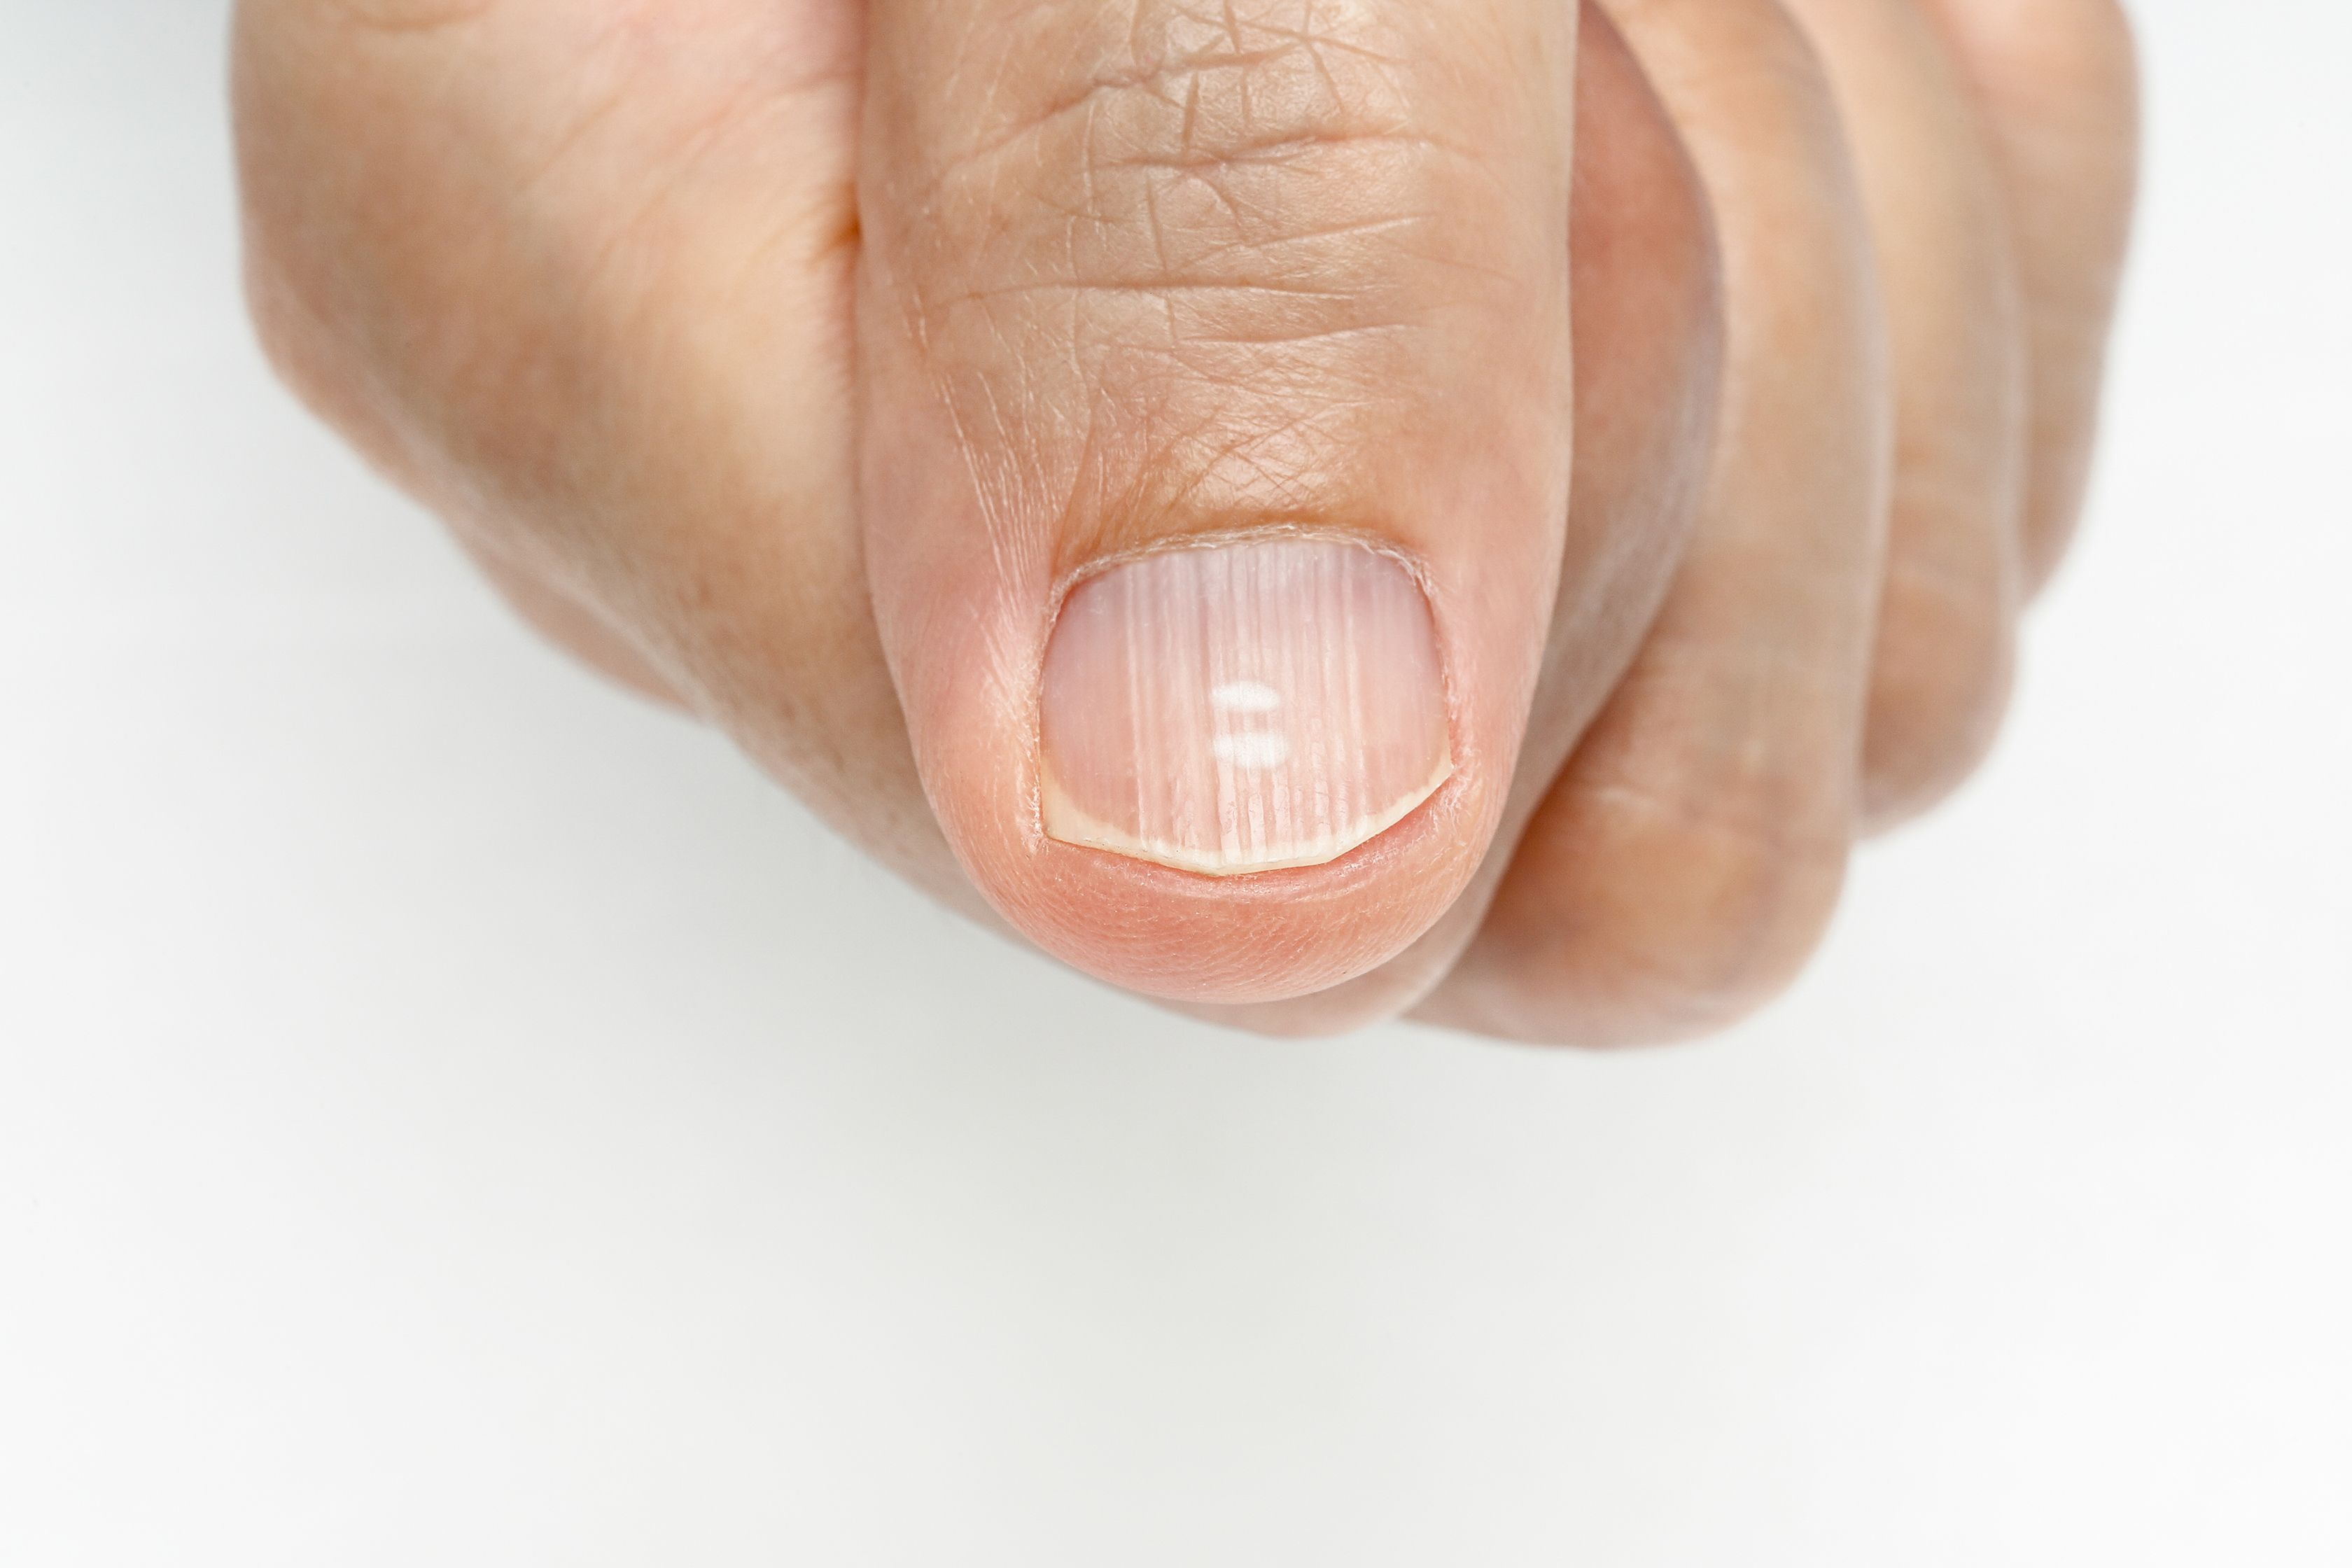 12 Ways to Get Rid of Ridges In Your Fingernails, According to Dermatologists